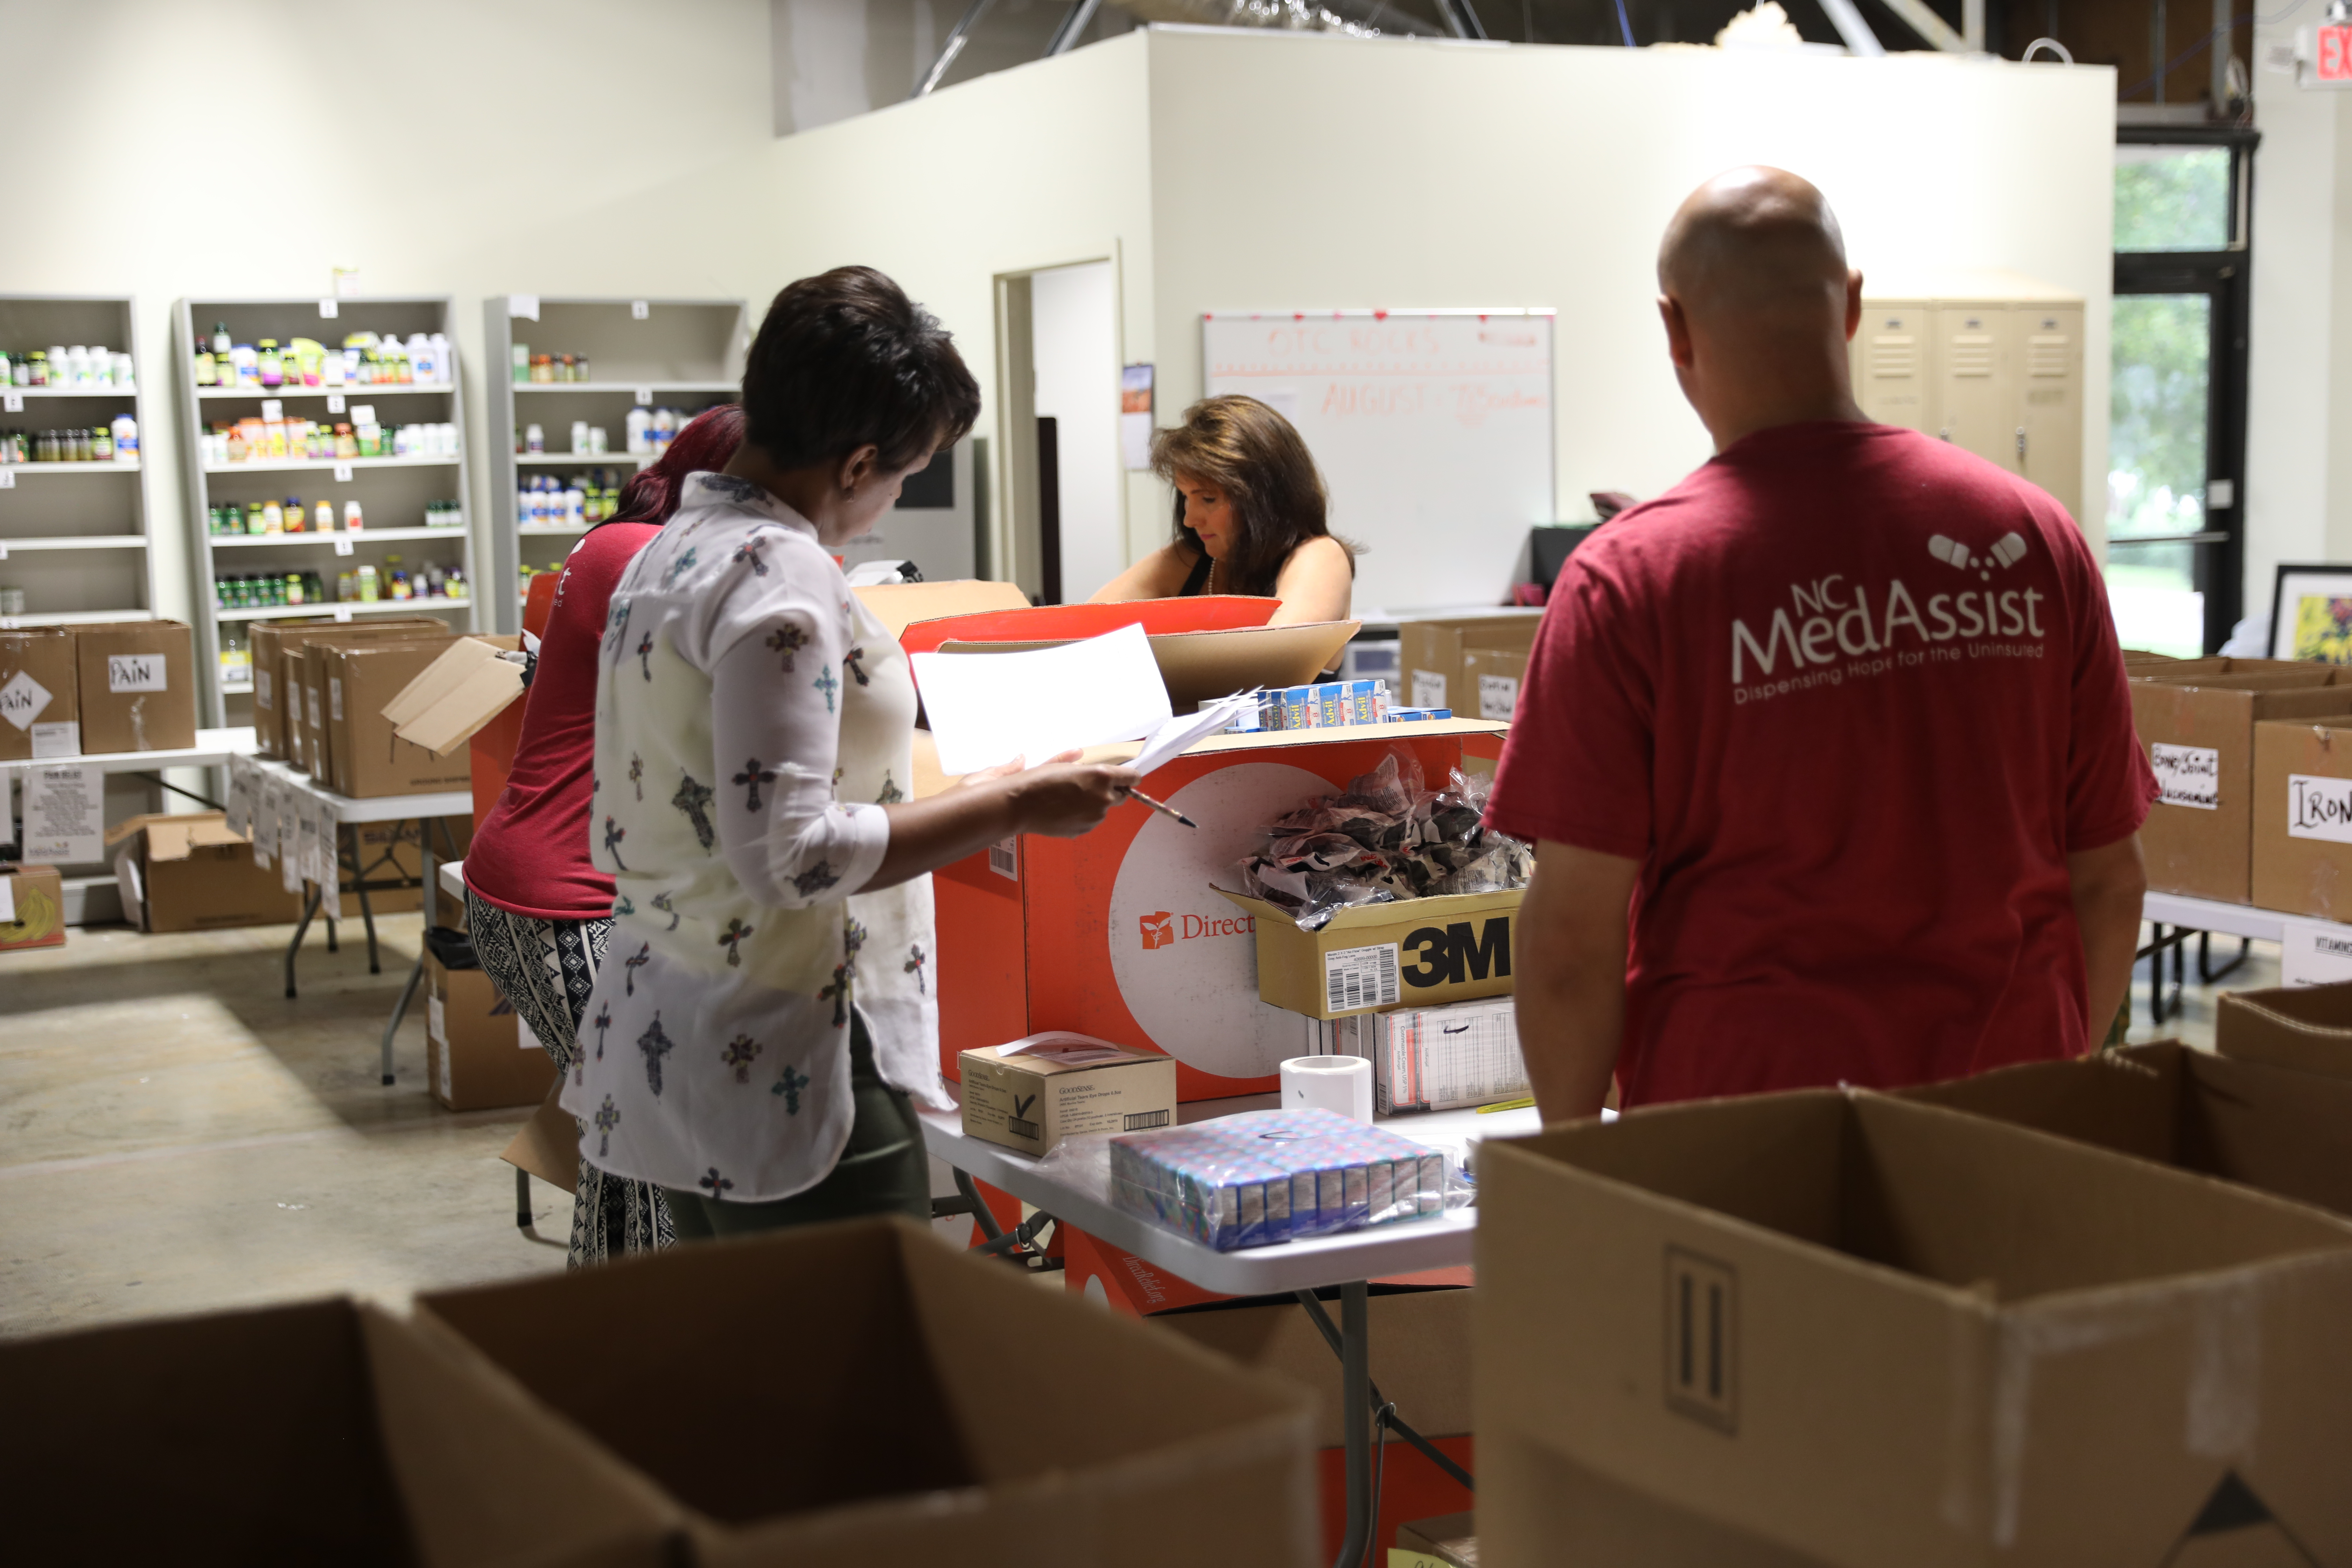 Staff from NC MedAssist in Charlotte inventoried medicines from Direct Relief on Friday. Many health centers and clinics are assessing the damage from Hurricane Florence to determine how to best serve patients displaced from wide-spread evacuations.  (Photo by Mark Semegen for Direct Relief)